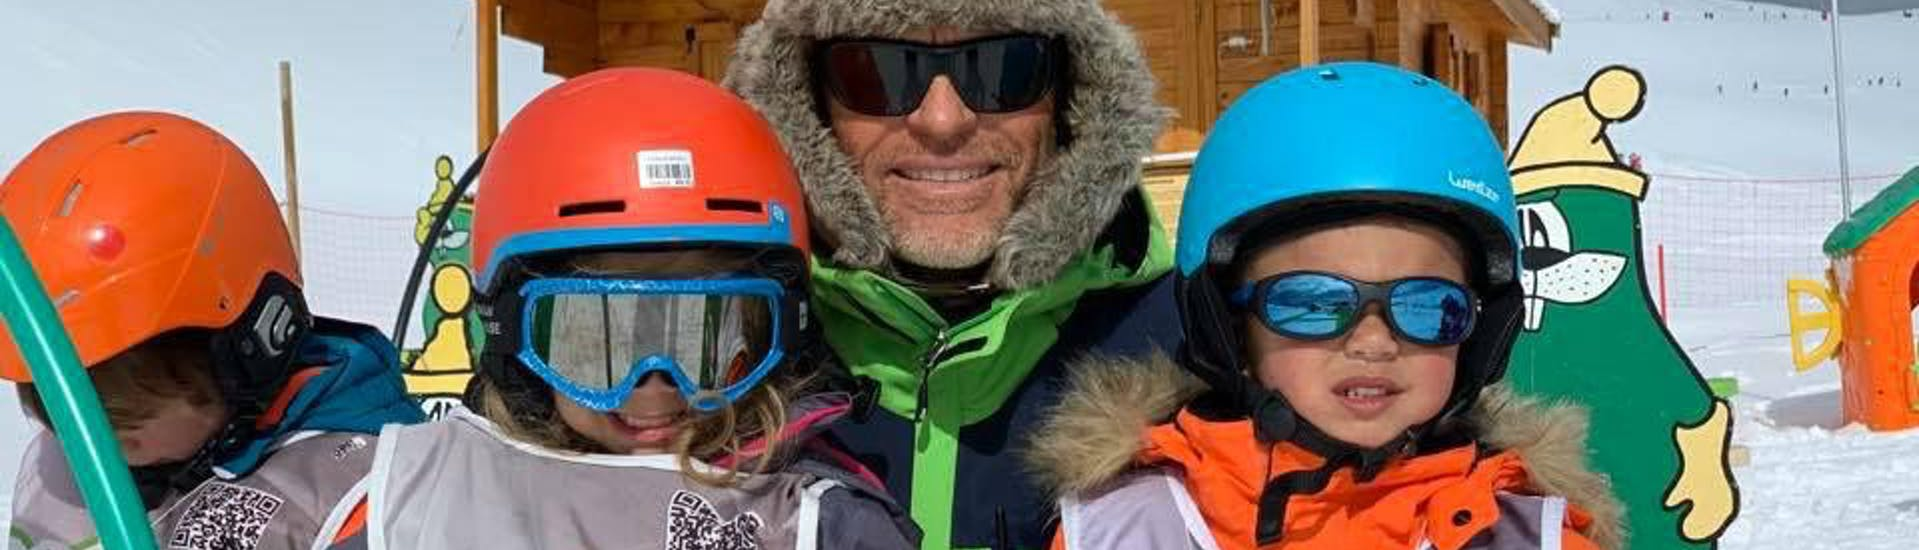 Kids are following Kids Ski Lessons (4-12 y.) - Holidays - Morning with EasySki Alpe d'Huez.